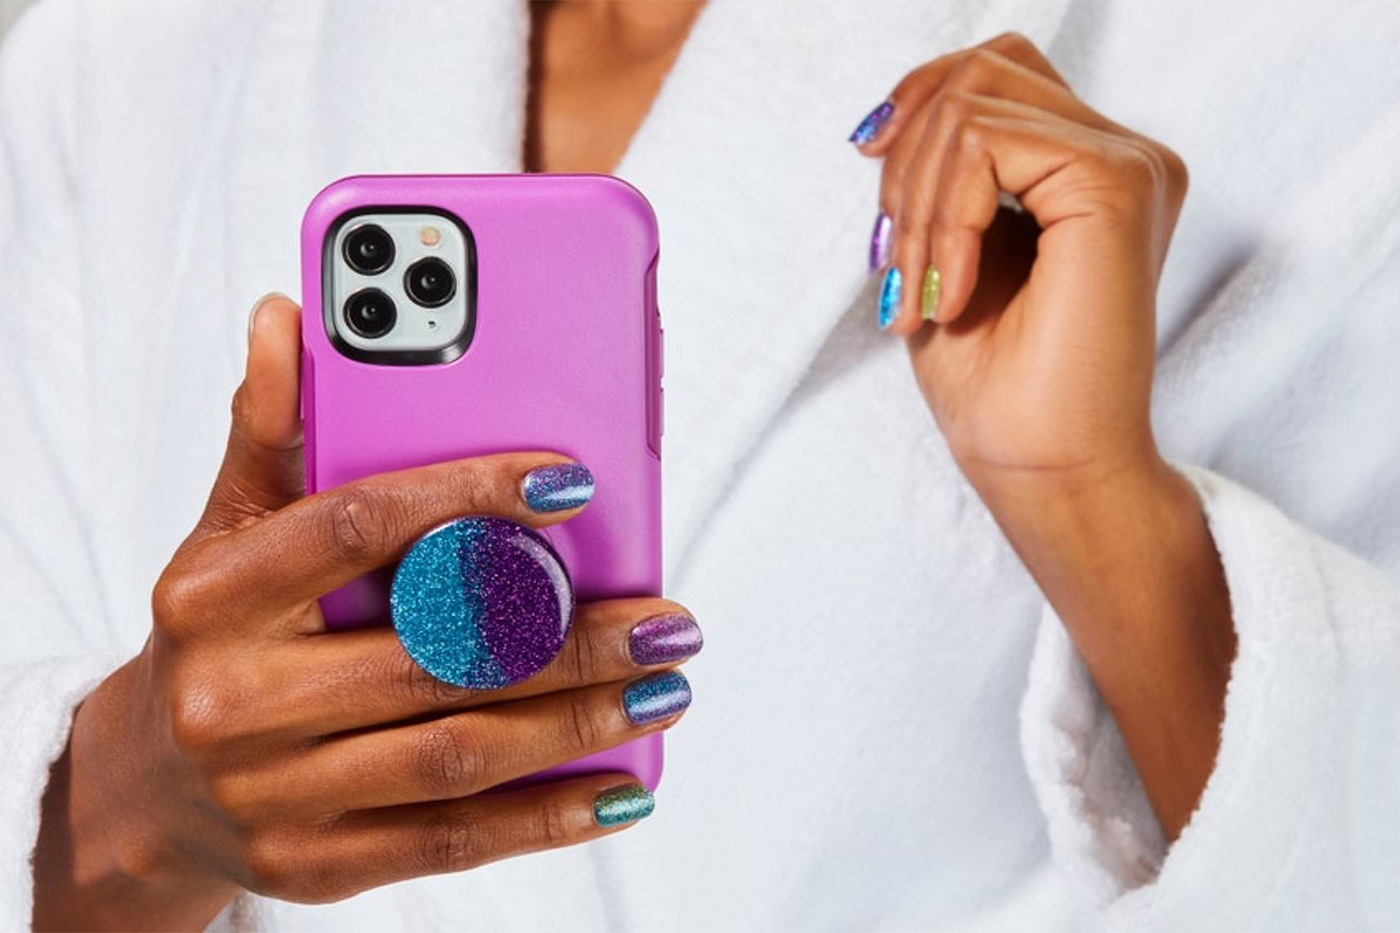 PopSockets launches instant manicured nails to match PopGrip